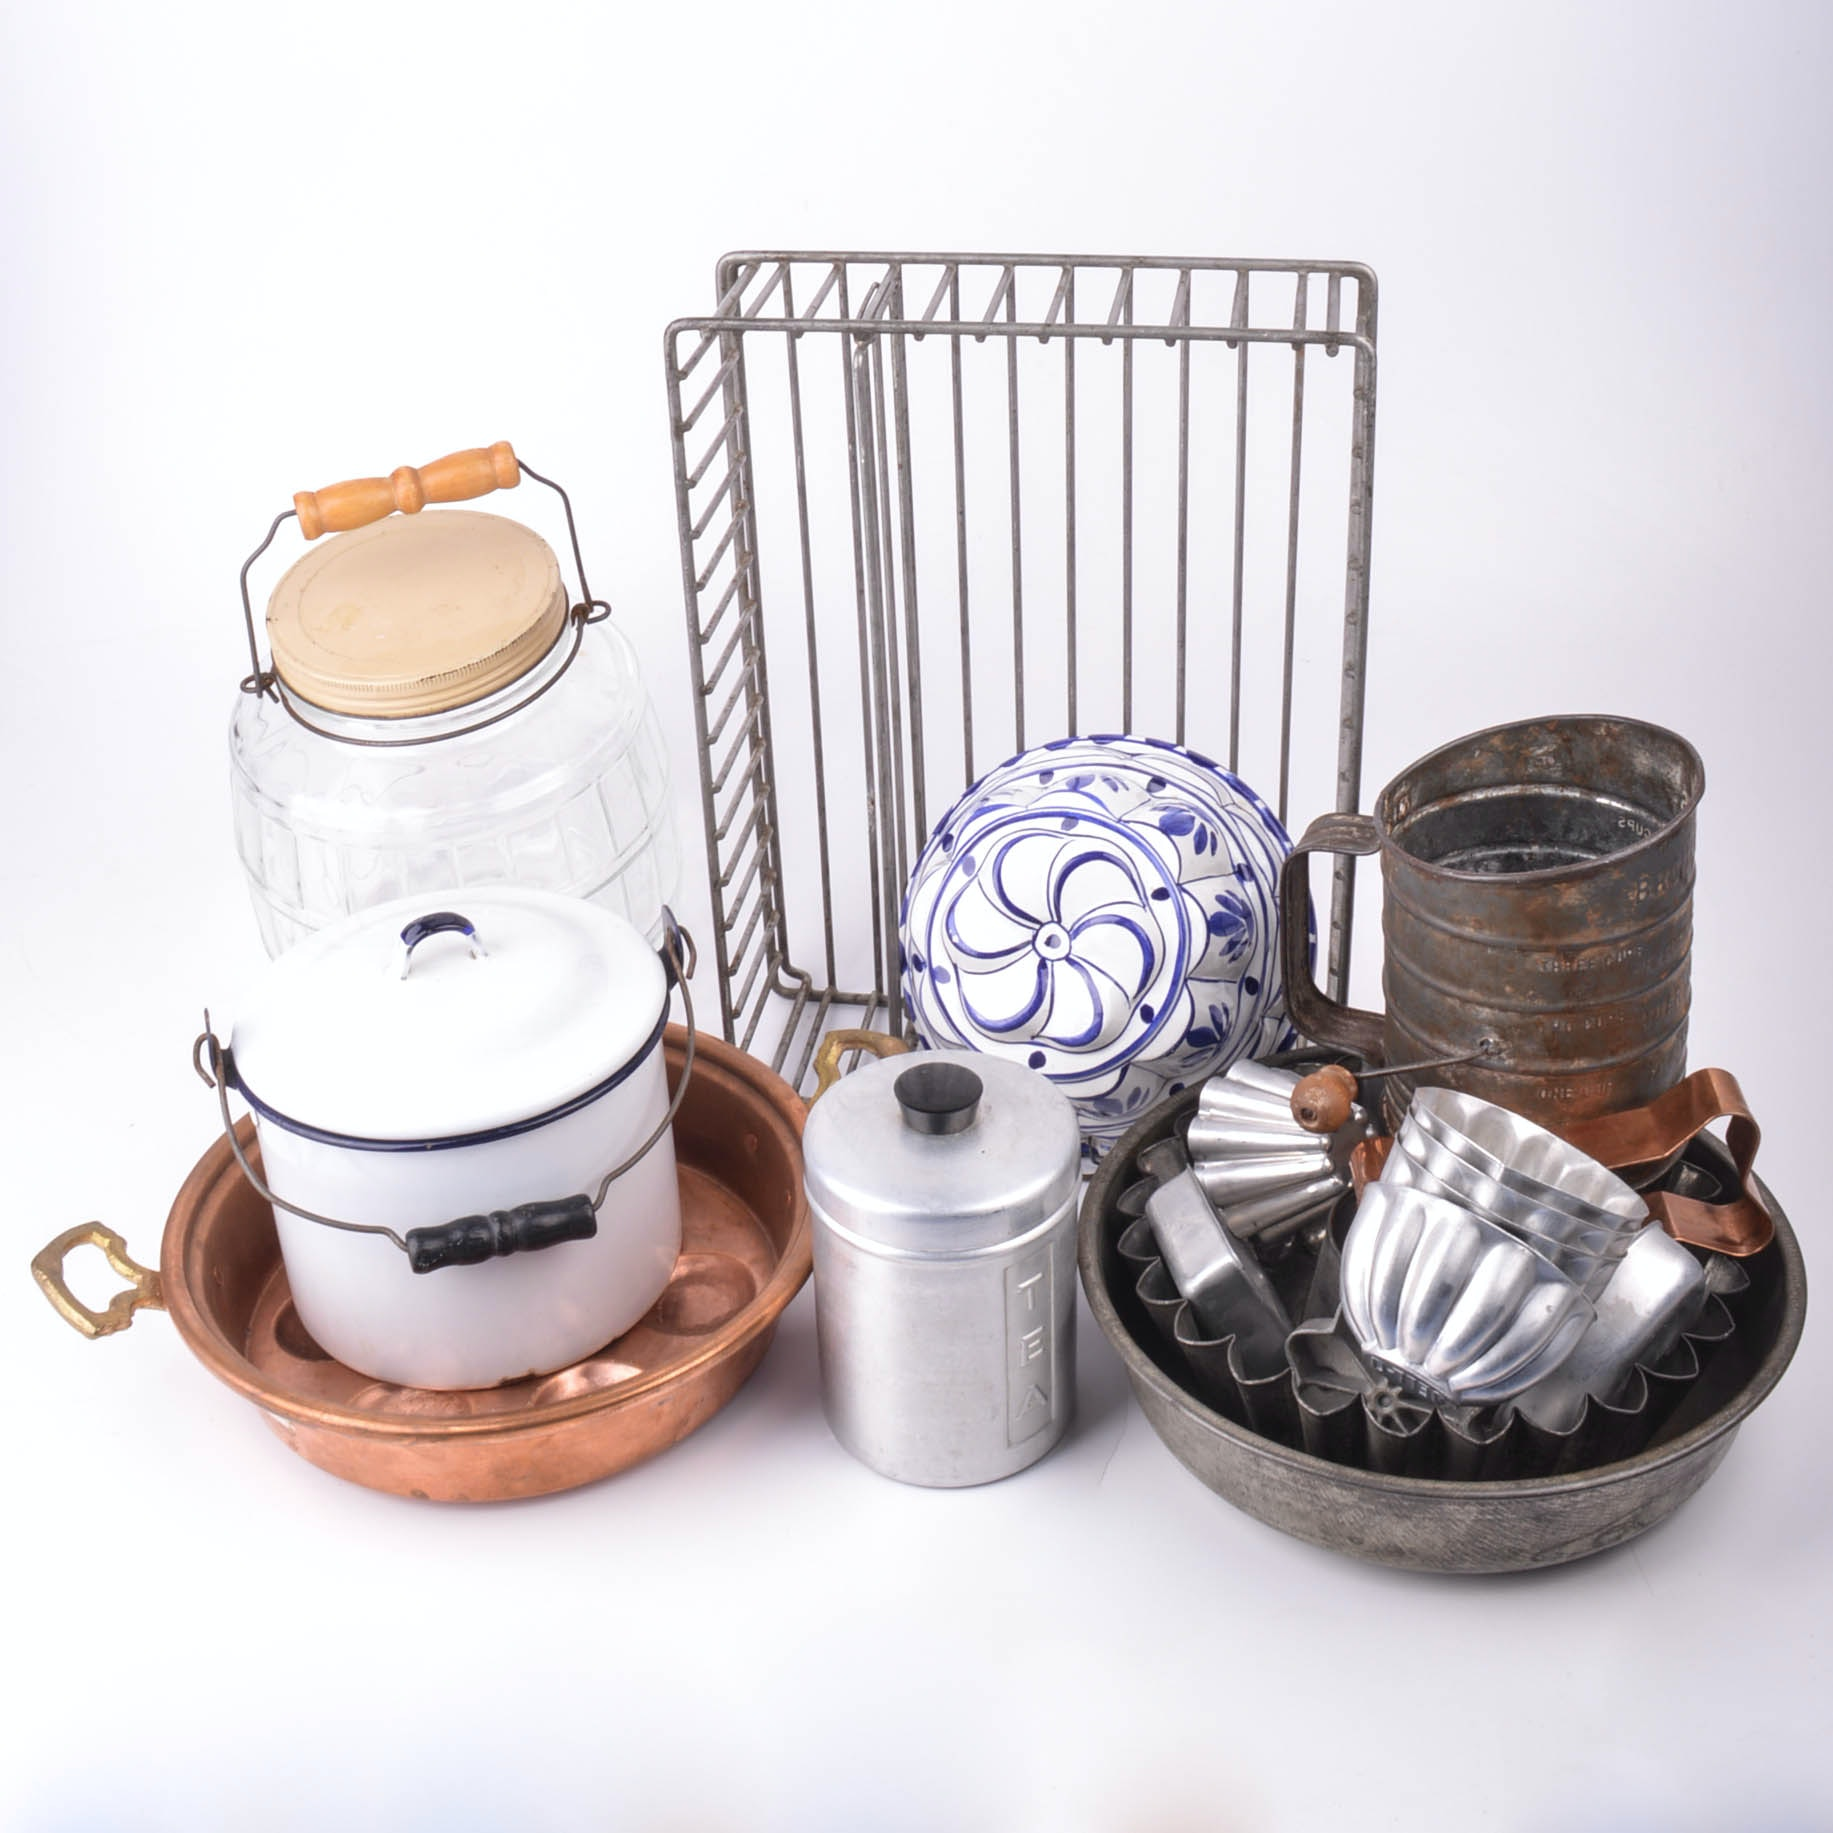 Kitchen Cookware and Decorations